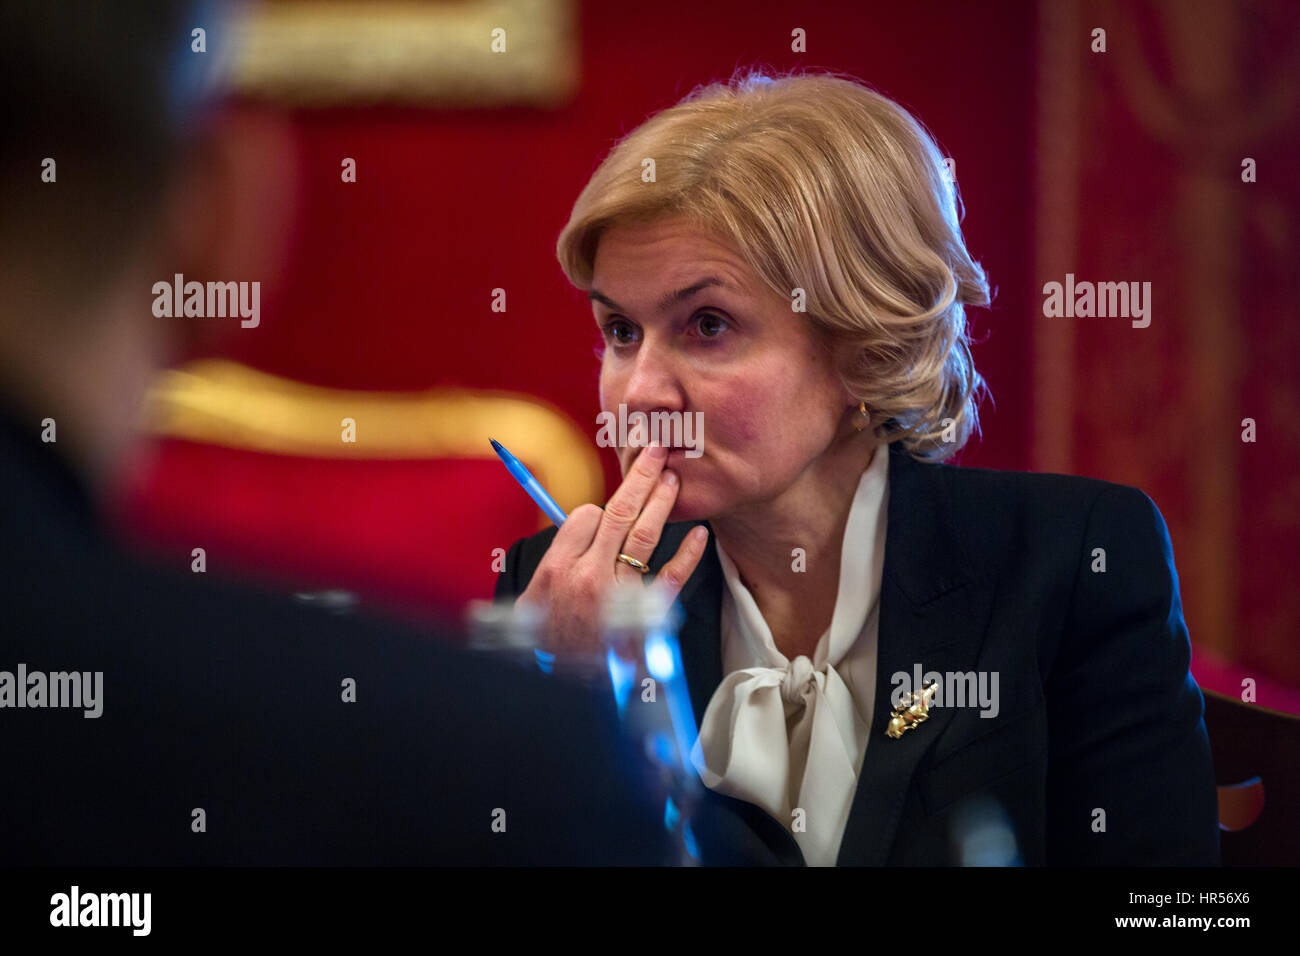 Deputy Prime Minister Olga Golodets during a working meeting in Moscow, Russia - Stock Image